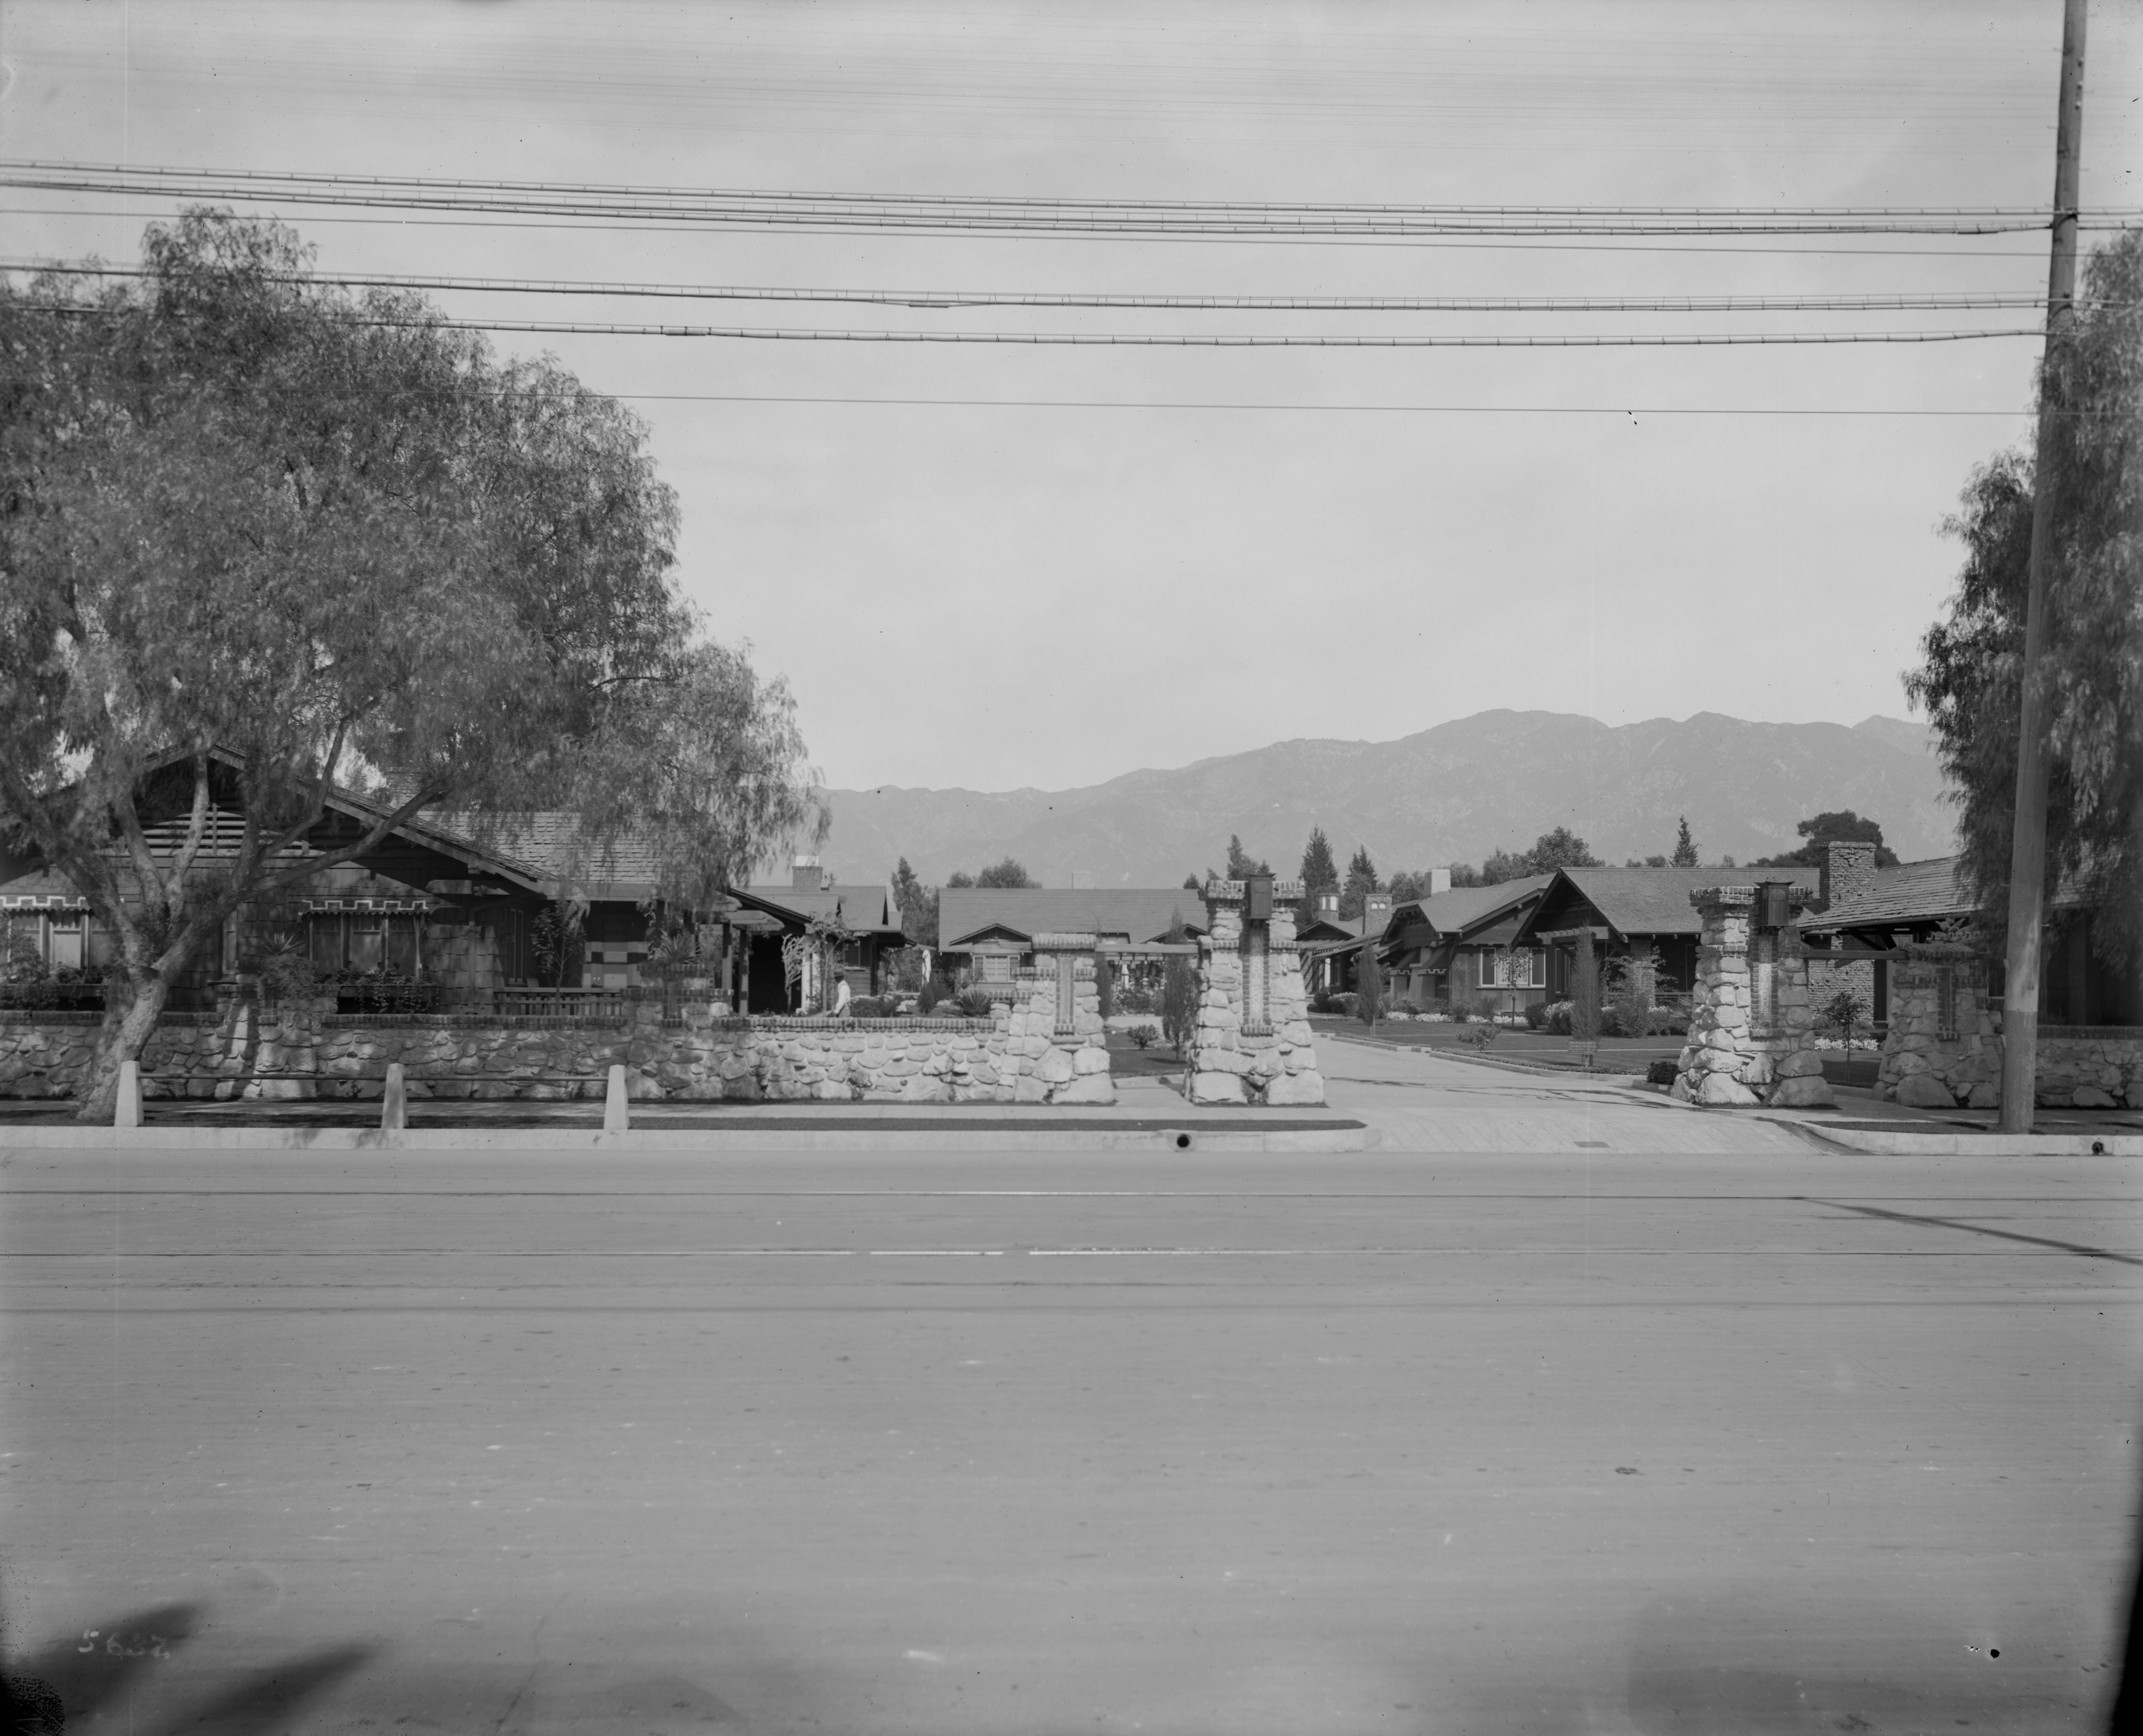 FileExterior View Of A California Bungalow Court With The San Gabriel Mountains In